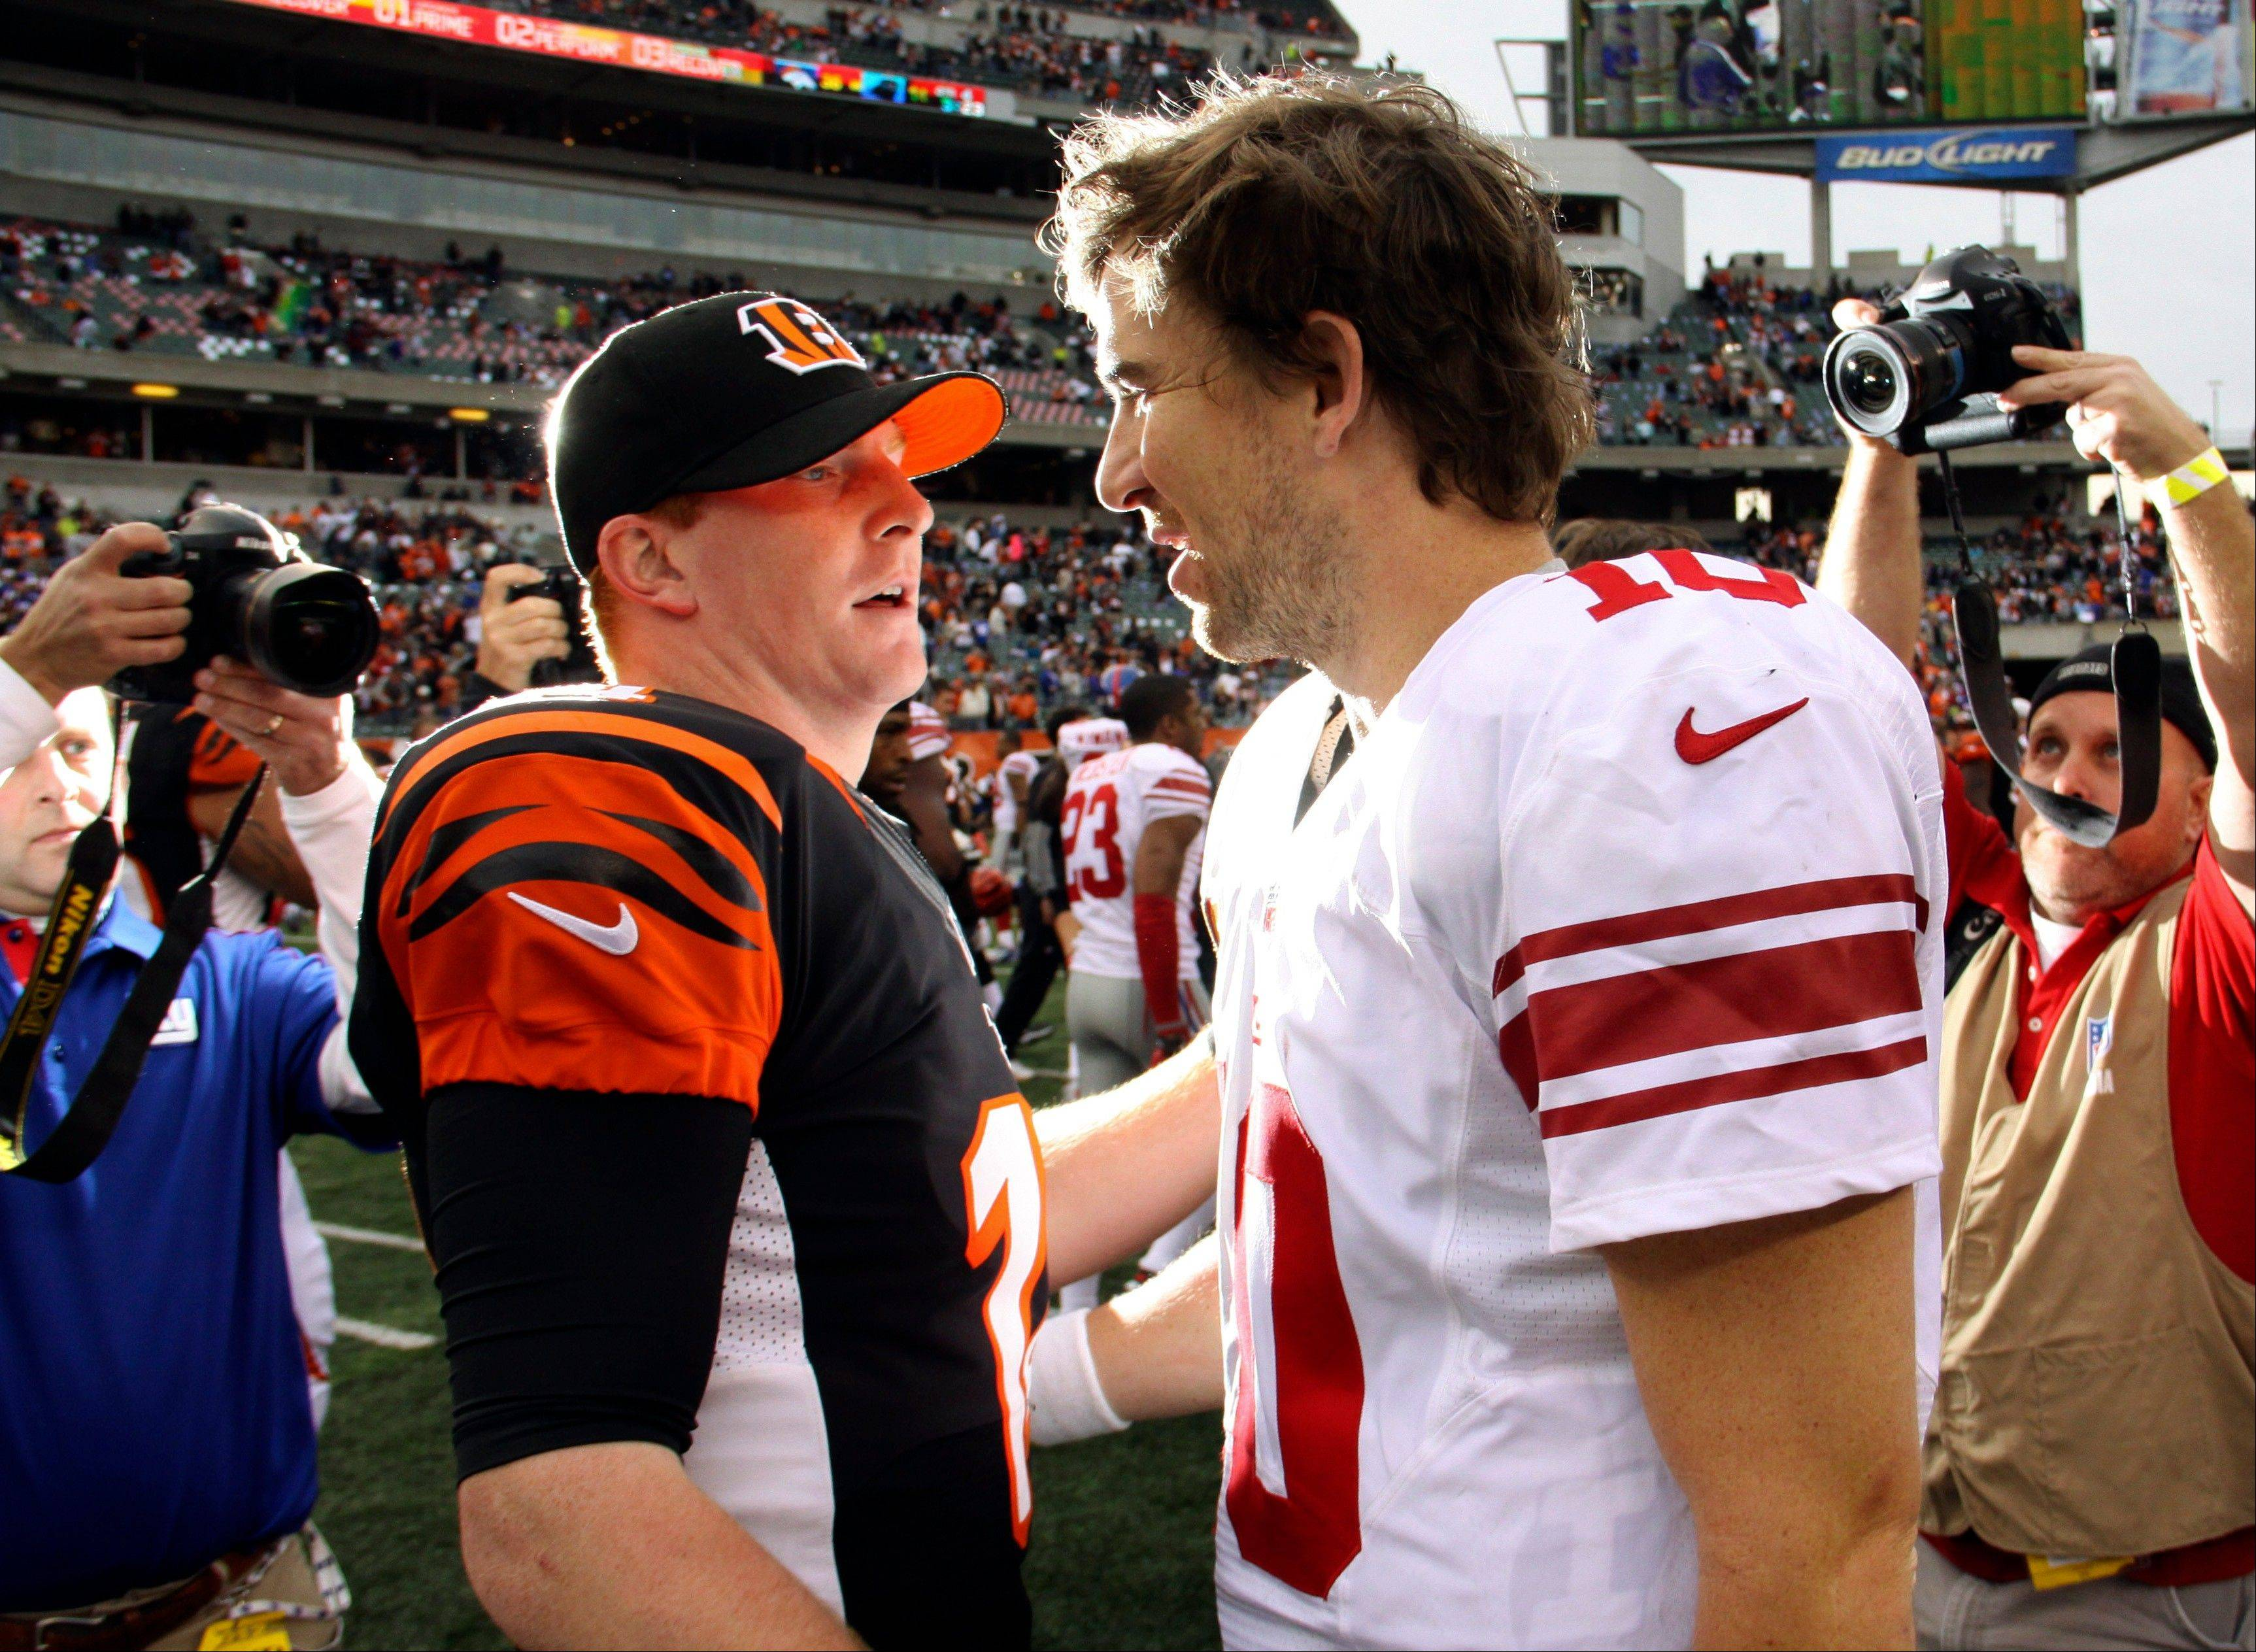 Cincinnati Bengals quarterback Andy Dalton (14) meets with New York Giants quarterback Eli Manning (10) after the Bengals' 31-13 win in an NFL football game, Sunday, Nov. 11, 2012, in Cincinnati.